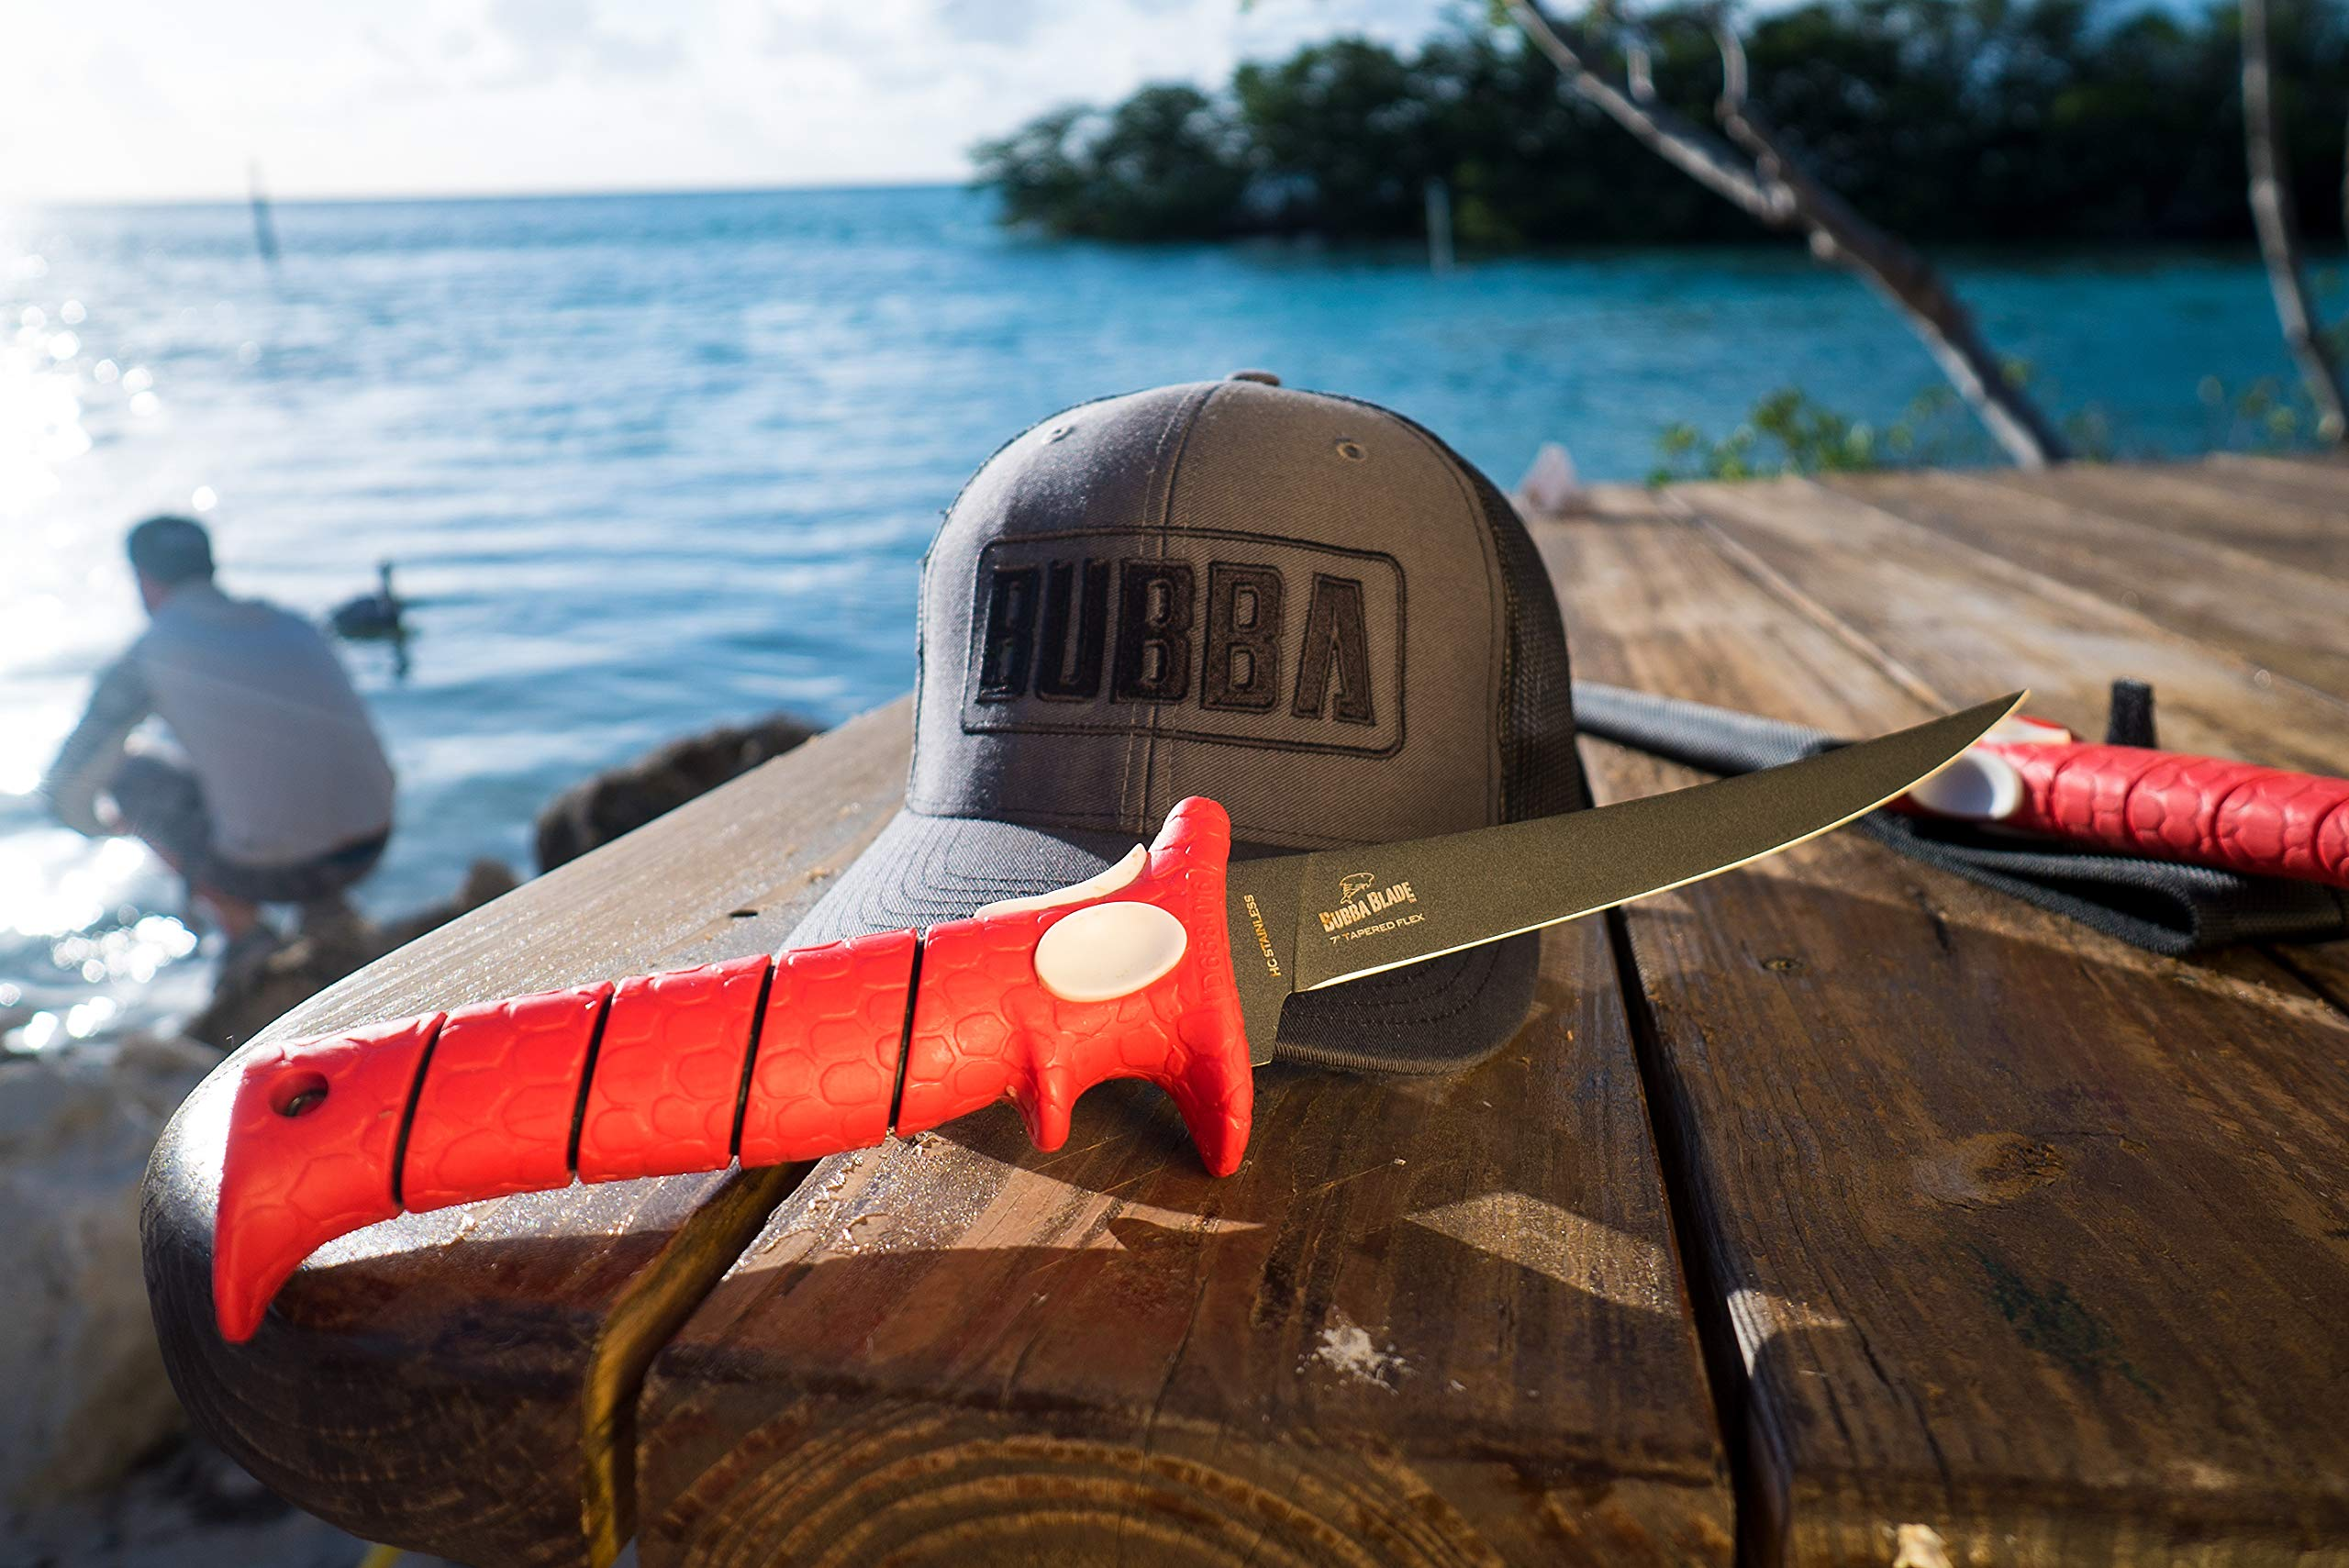 Bubba Blade 9 Inch Tapered Flex Fillet Knife with Non-Slip Grip Handle, Full Tang High Carbon Stainless Steel Titanium Coated Non-Stick Blade, Lanyard Hole and Synthetic Sheath for Fishing by Bubba Blade (Image #4)